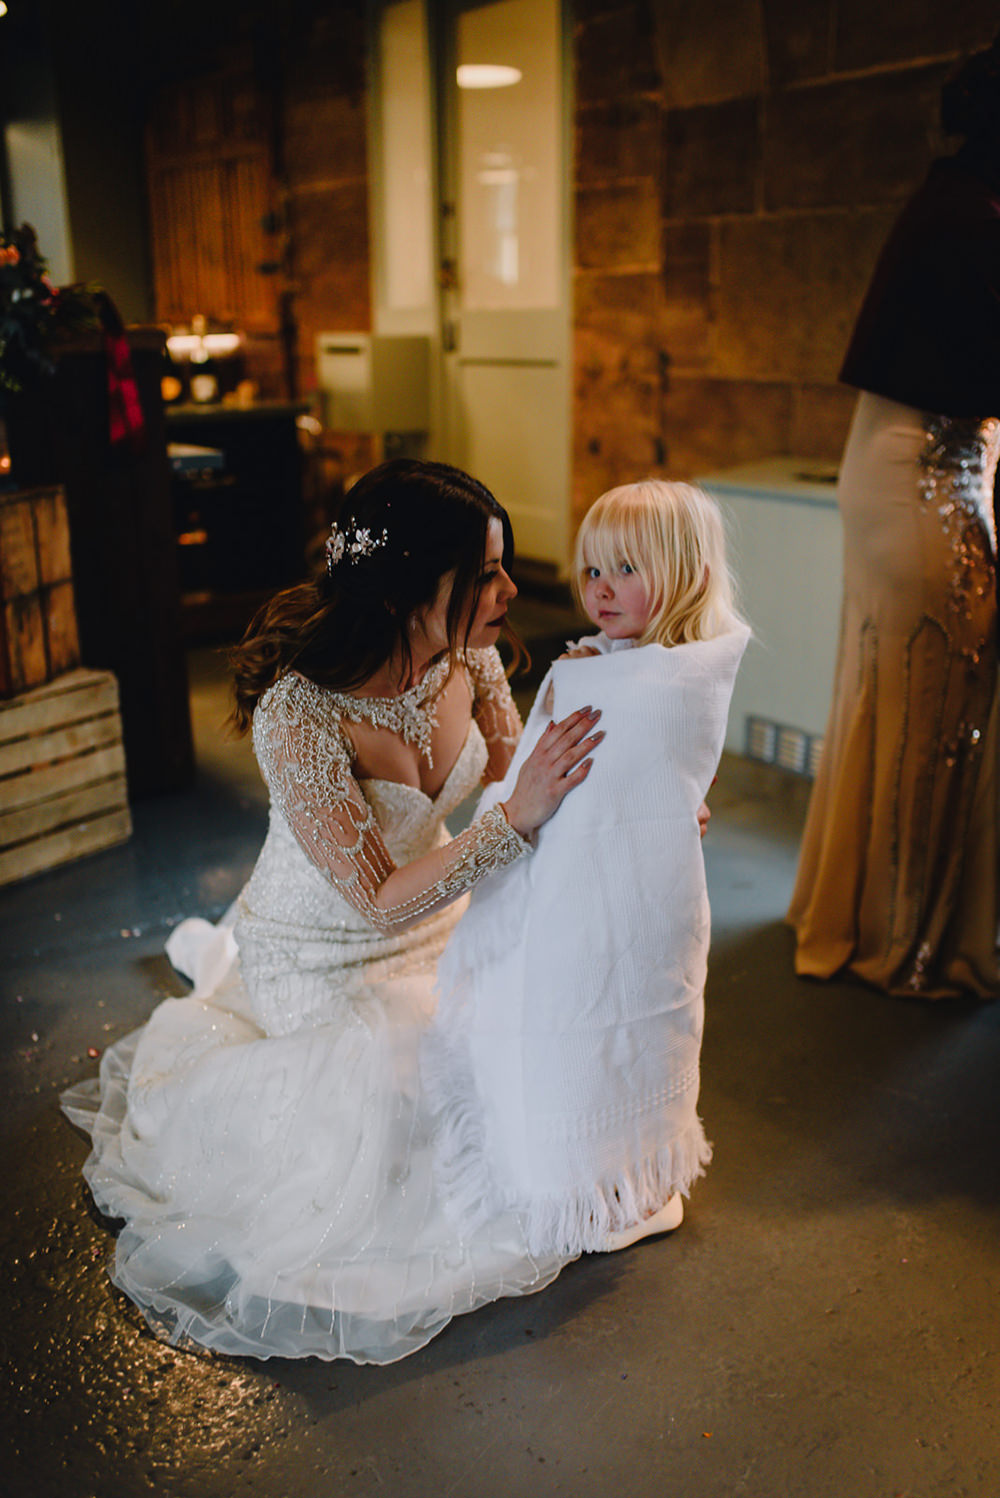 Justin Alexander Dress Bride Bridal Beaded Sleeves Flower Girl Blanket Industrial Winter Wedding Reality Photography